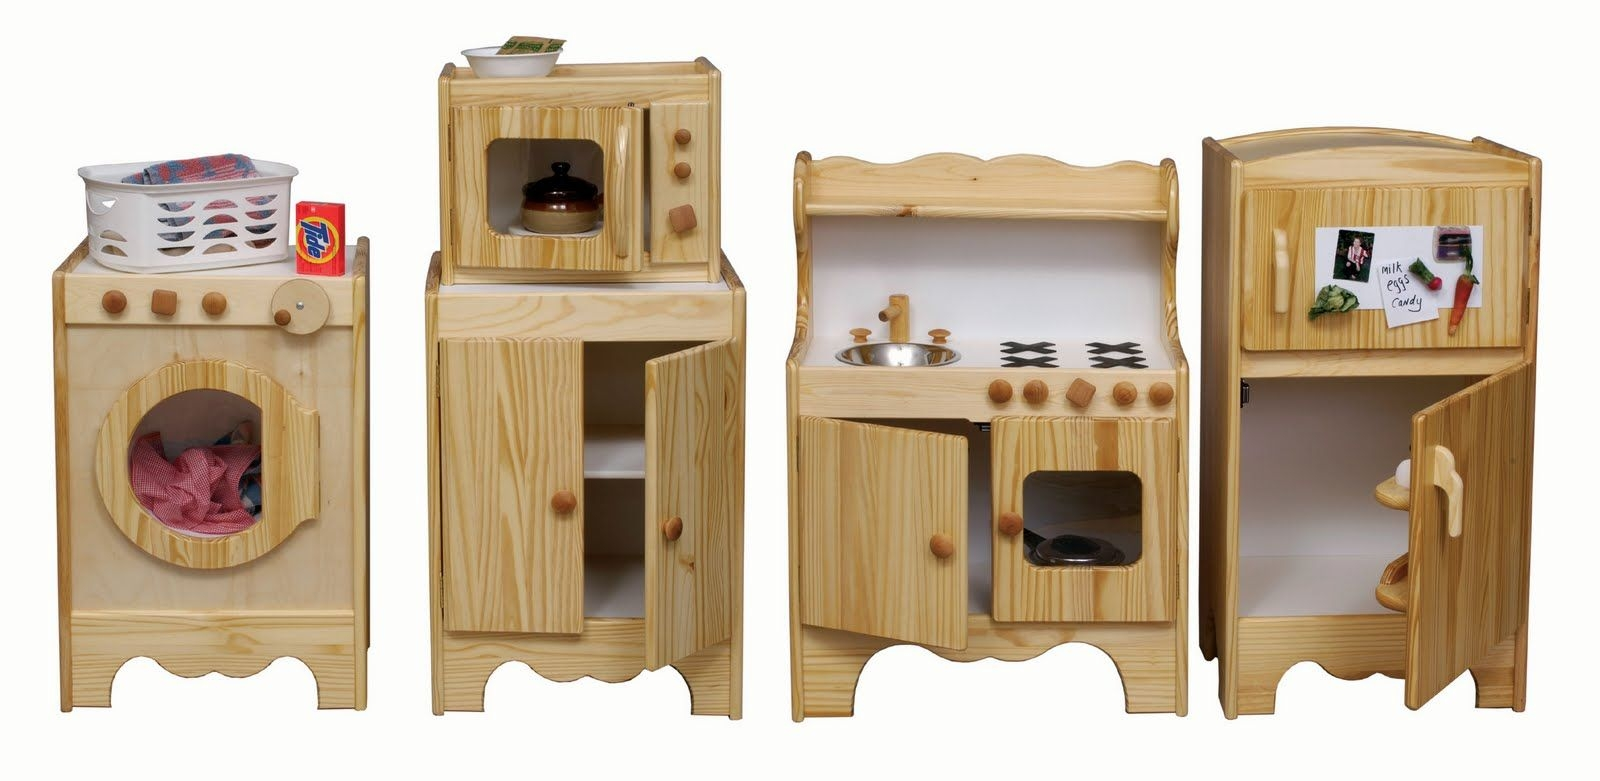 Superbe Amazing Handmade Wooden Play Kitchen